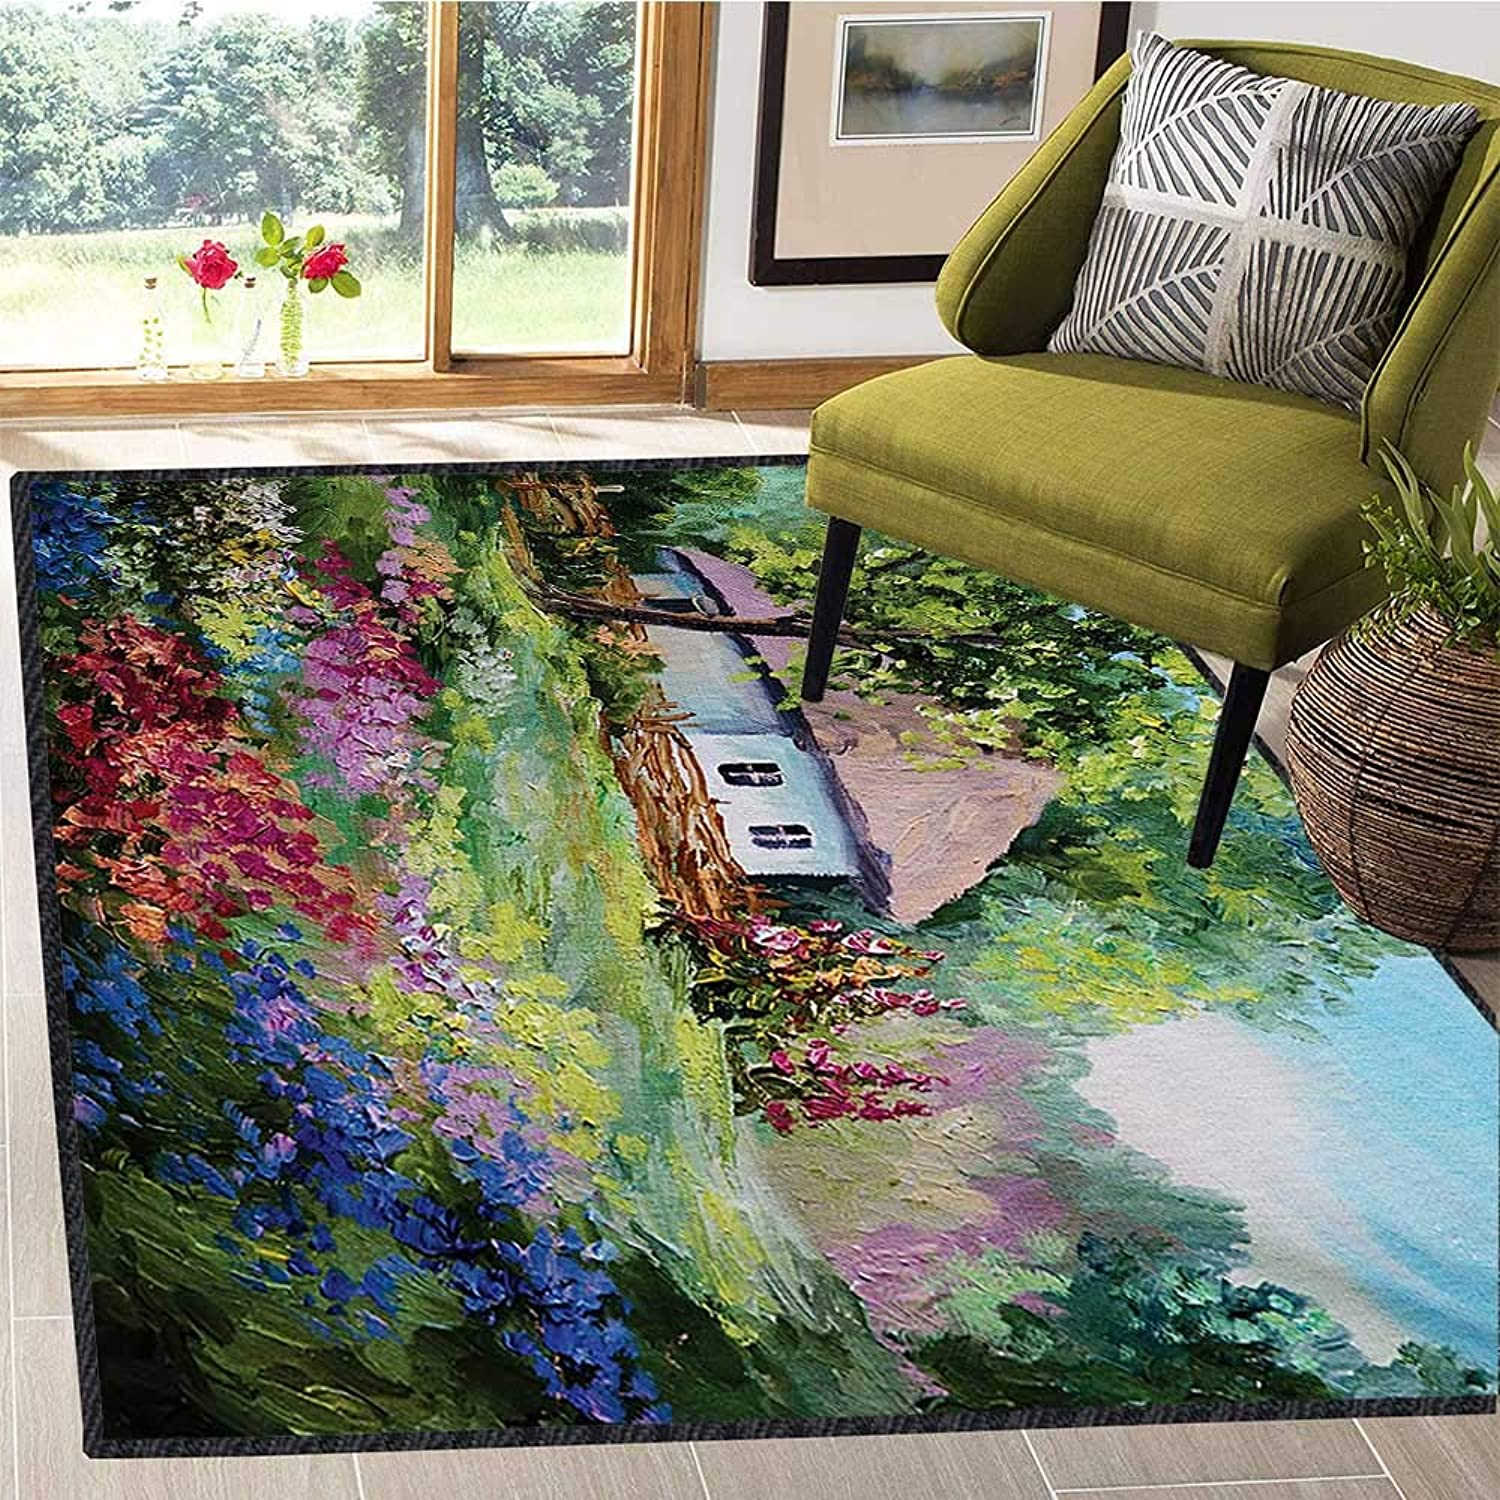 Rustic, Room Home Bedroom Carpet Floor Mat, Artistic Stone House and Small Garden with Wooden Fence colorful Spring Flowers, Door Mat Outside 4x6 Ft Multicolor